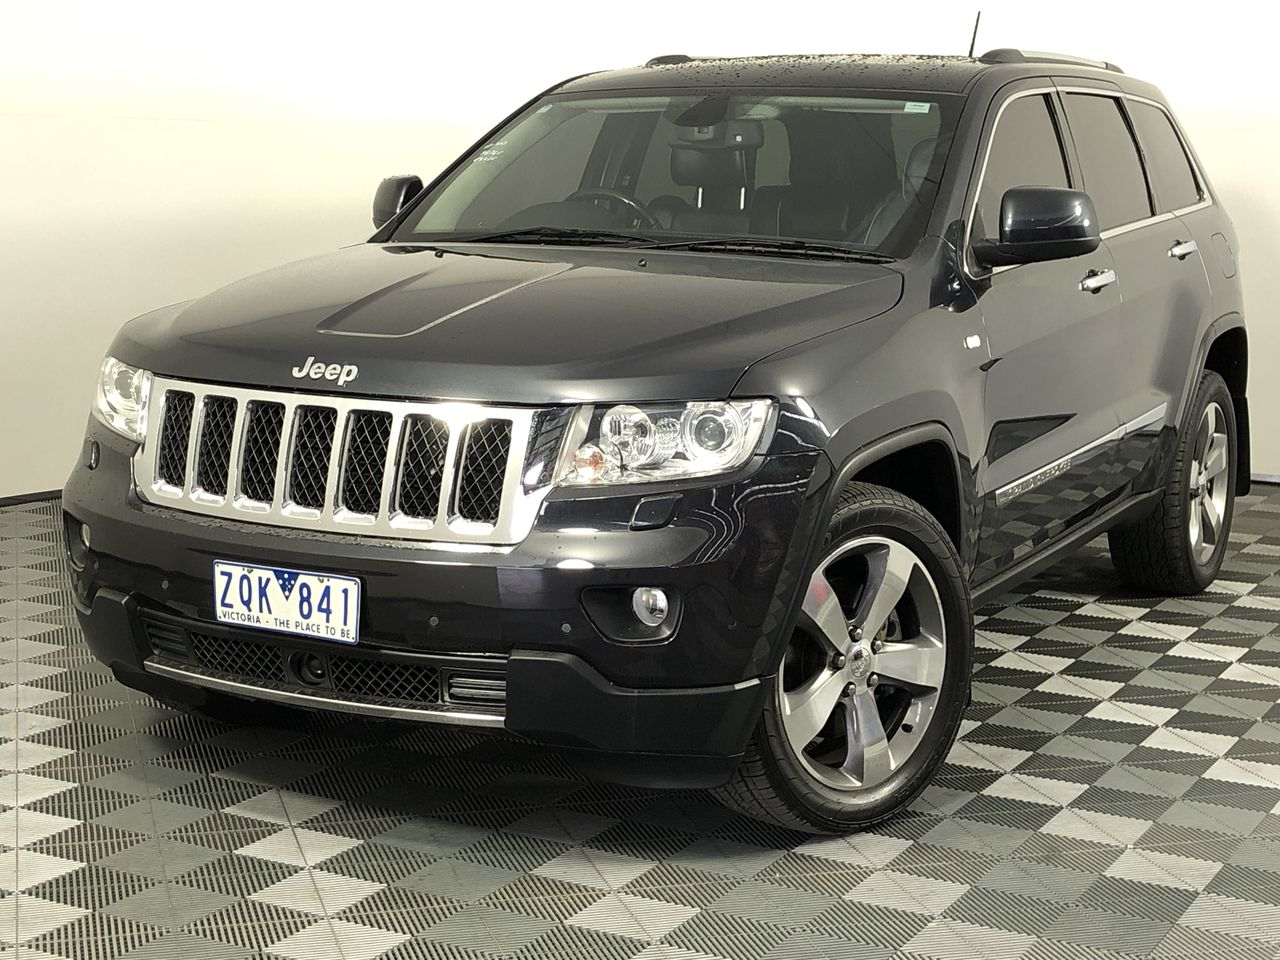 2012 Jeep Grand Cherokee Overland (4x4) WK (RWC Issued 18/09/19)